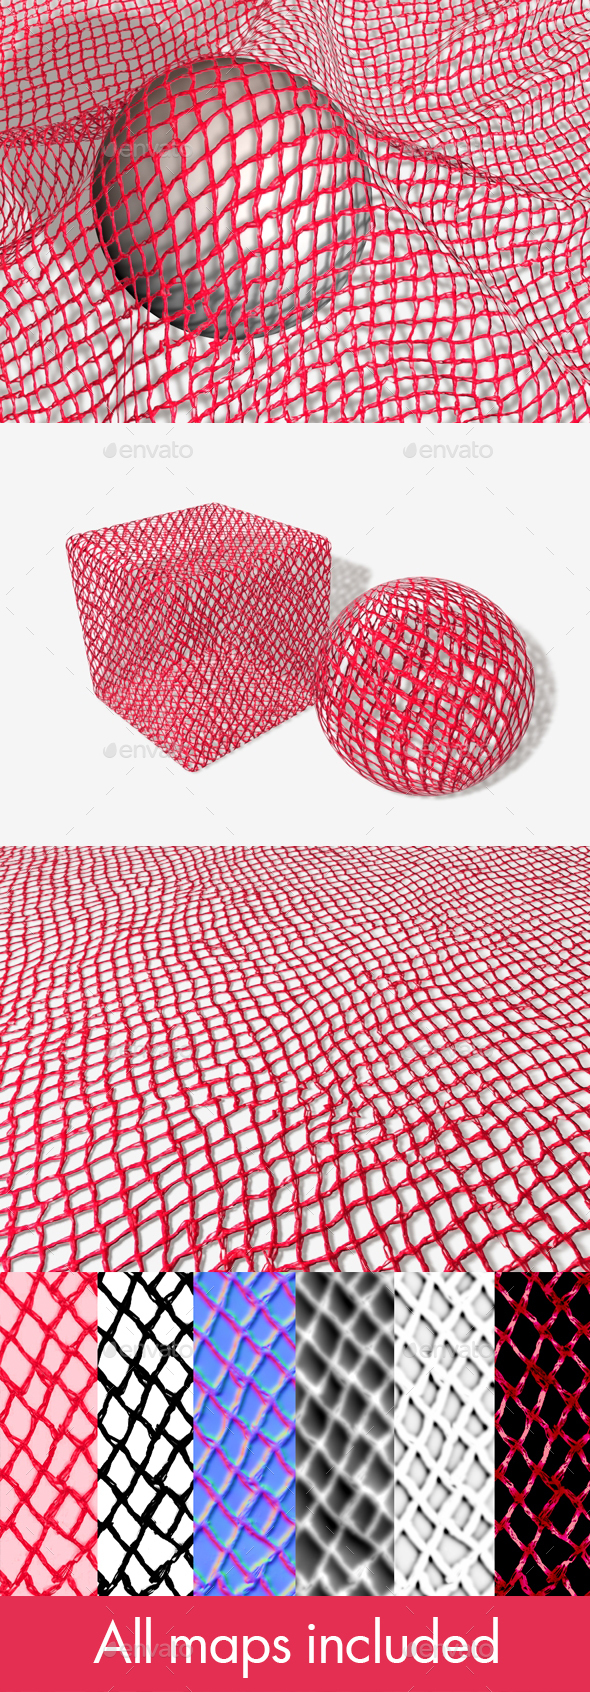 Vegetable and Fruit Net Bag Seamless Texture - 3DOcean Item for Sale